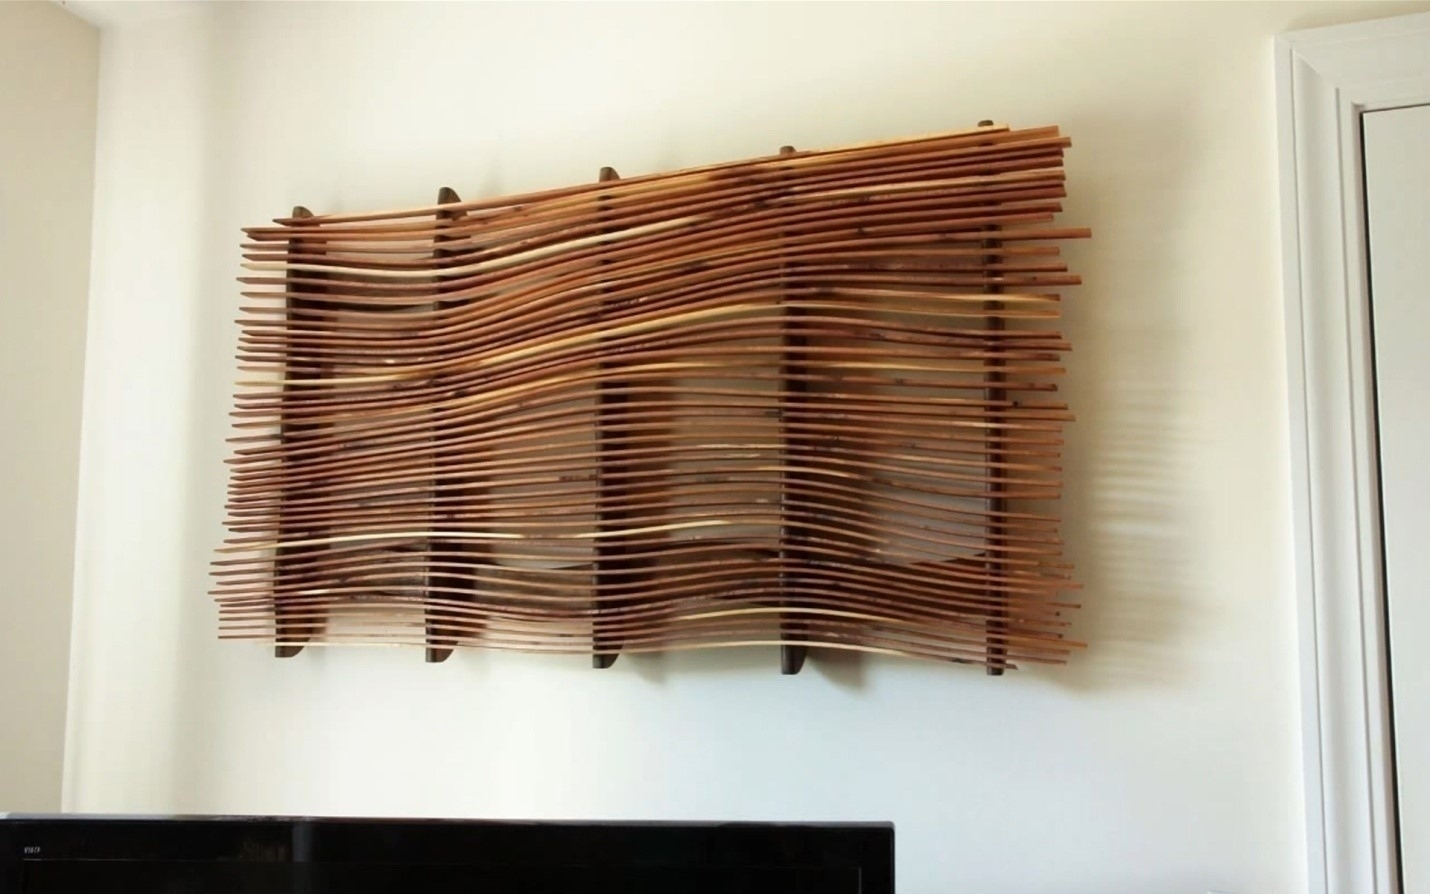 How To Make Wall Art From Scrap Wood | Diy Project – Cut The Wood For Most Popular Wood Wall Art Diy (View 9 of 15)